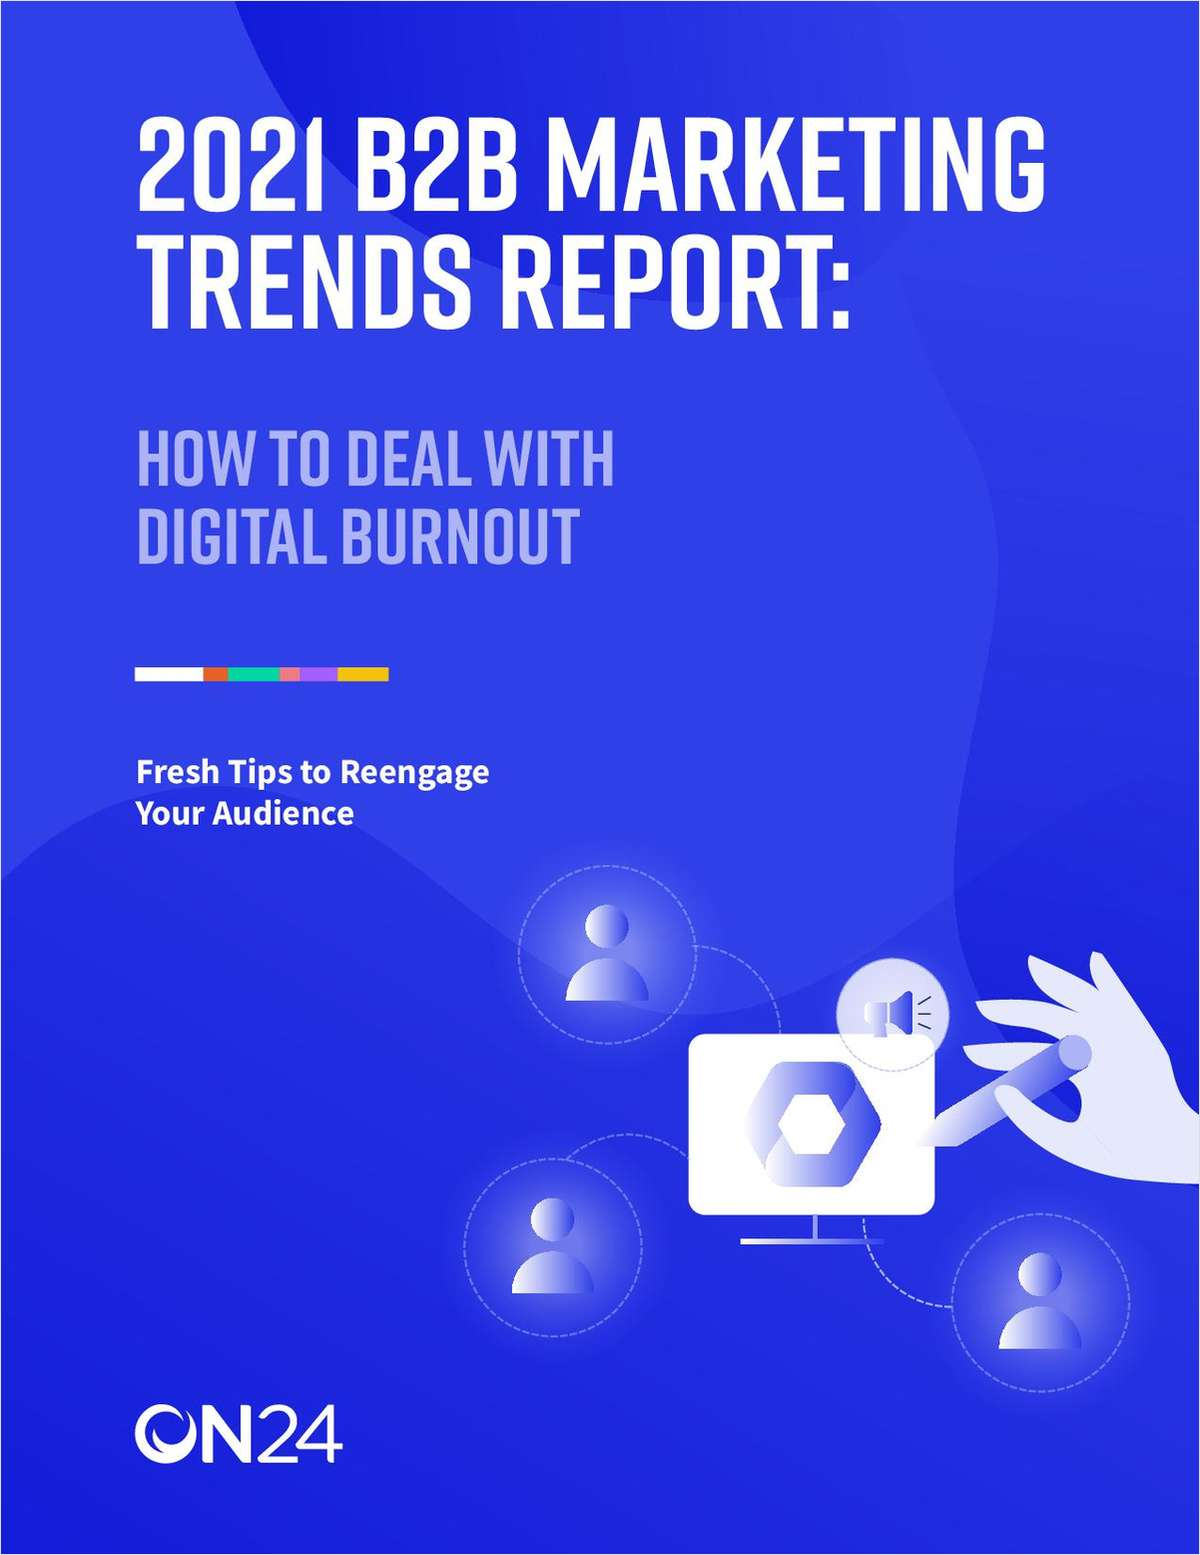 B2B Marketing Trends Report: How To Deal With Digital Burnout